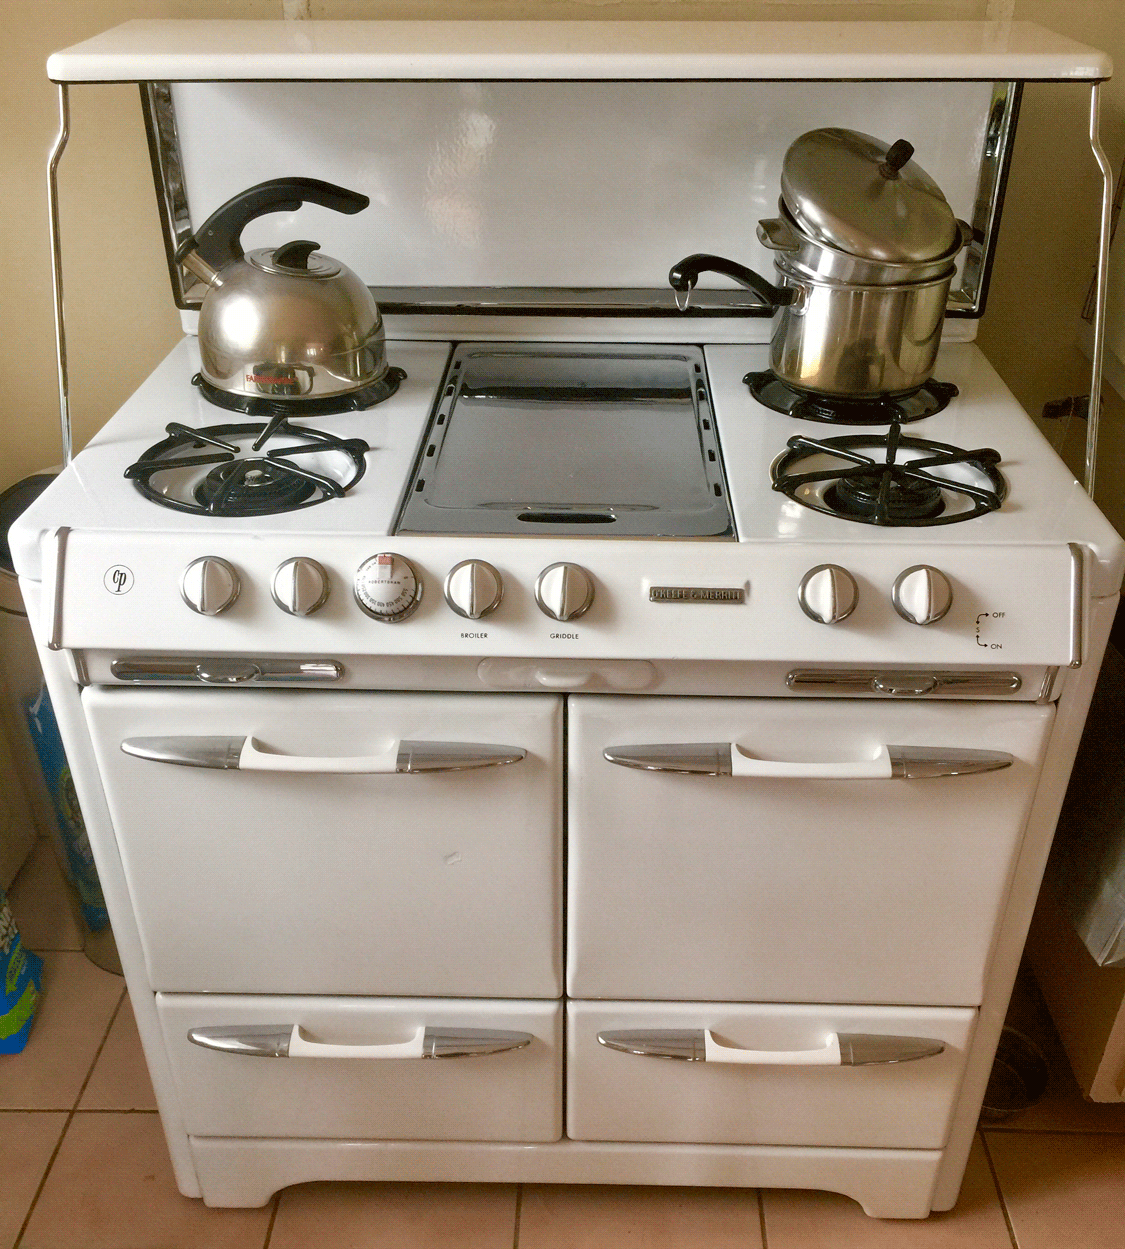 Stove with lid folded up fourd doors on front four burners and chrome pancake griddle in middle of cooktop